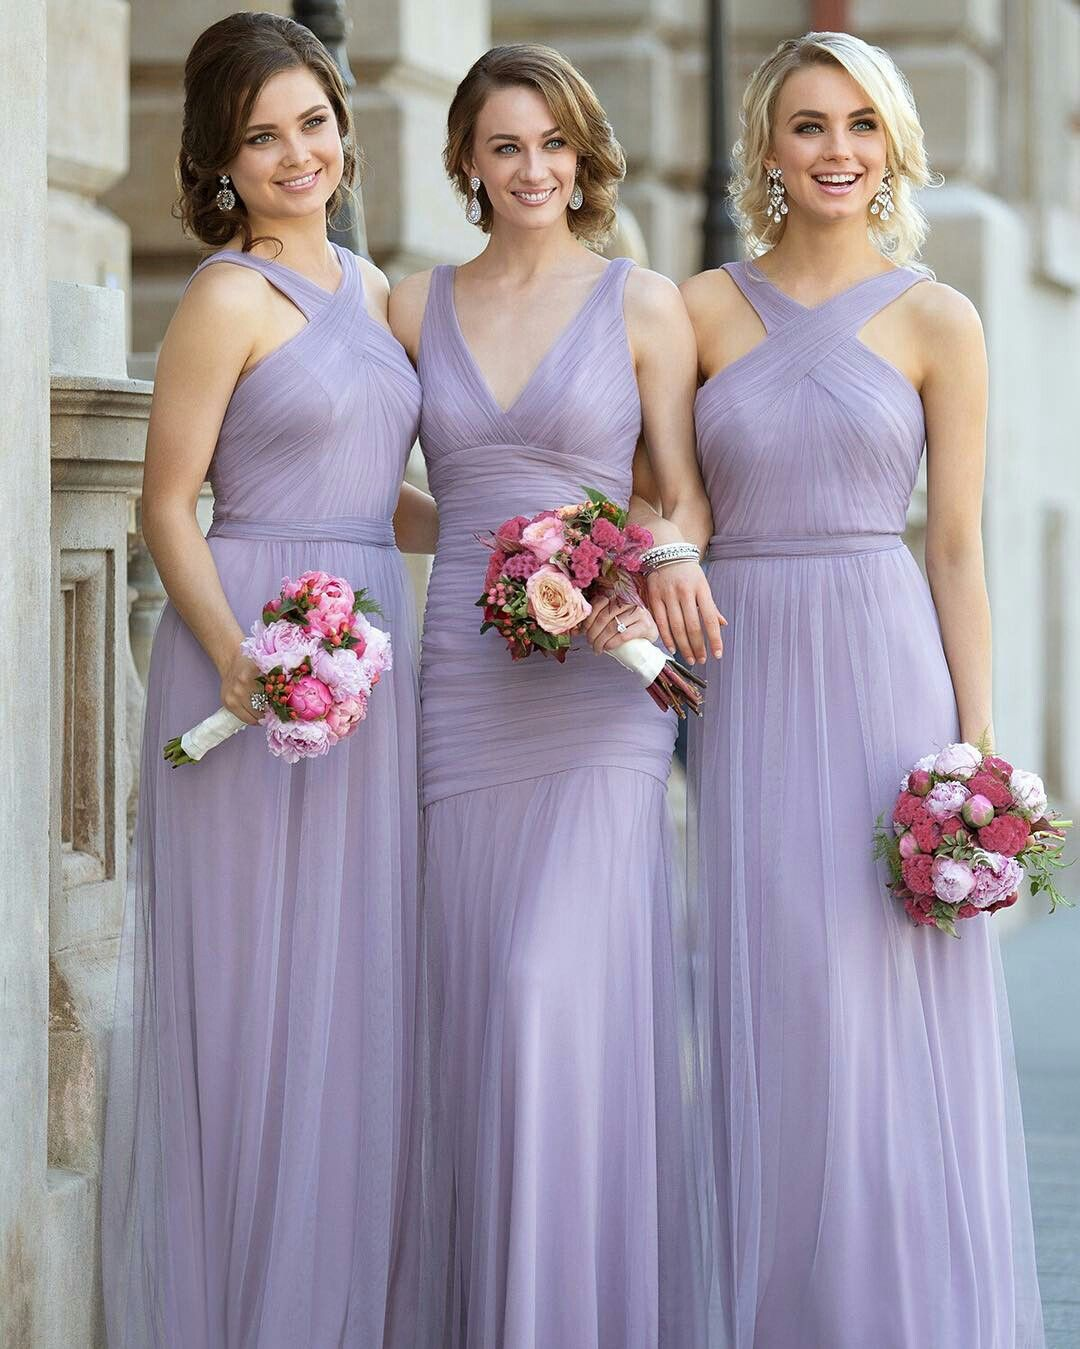 Pin by lisa lannoy on when we say we do pinterest 8828 flowing criss cross strap bridesmaid dress by sorella vita ombrellifo Images